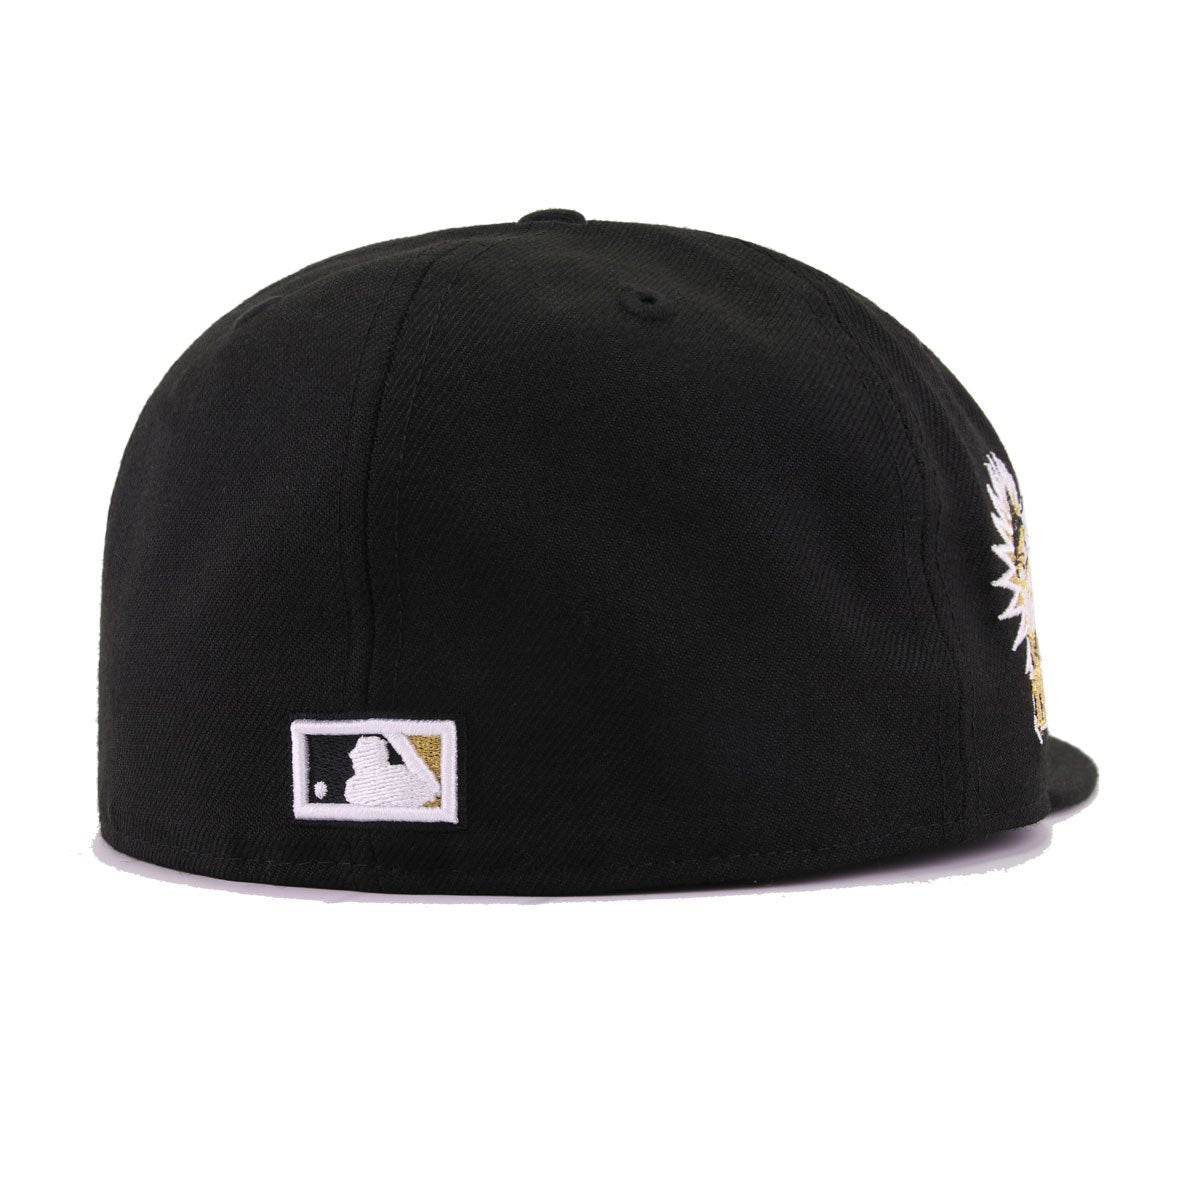 Florida Marlins Black Metallic Gold 1993 Inaugural Season New Era 59Fifty Fitted